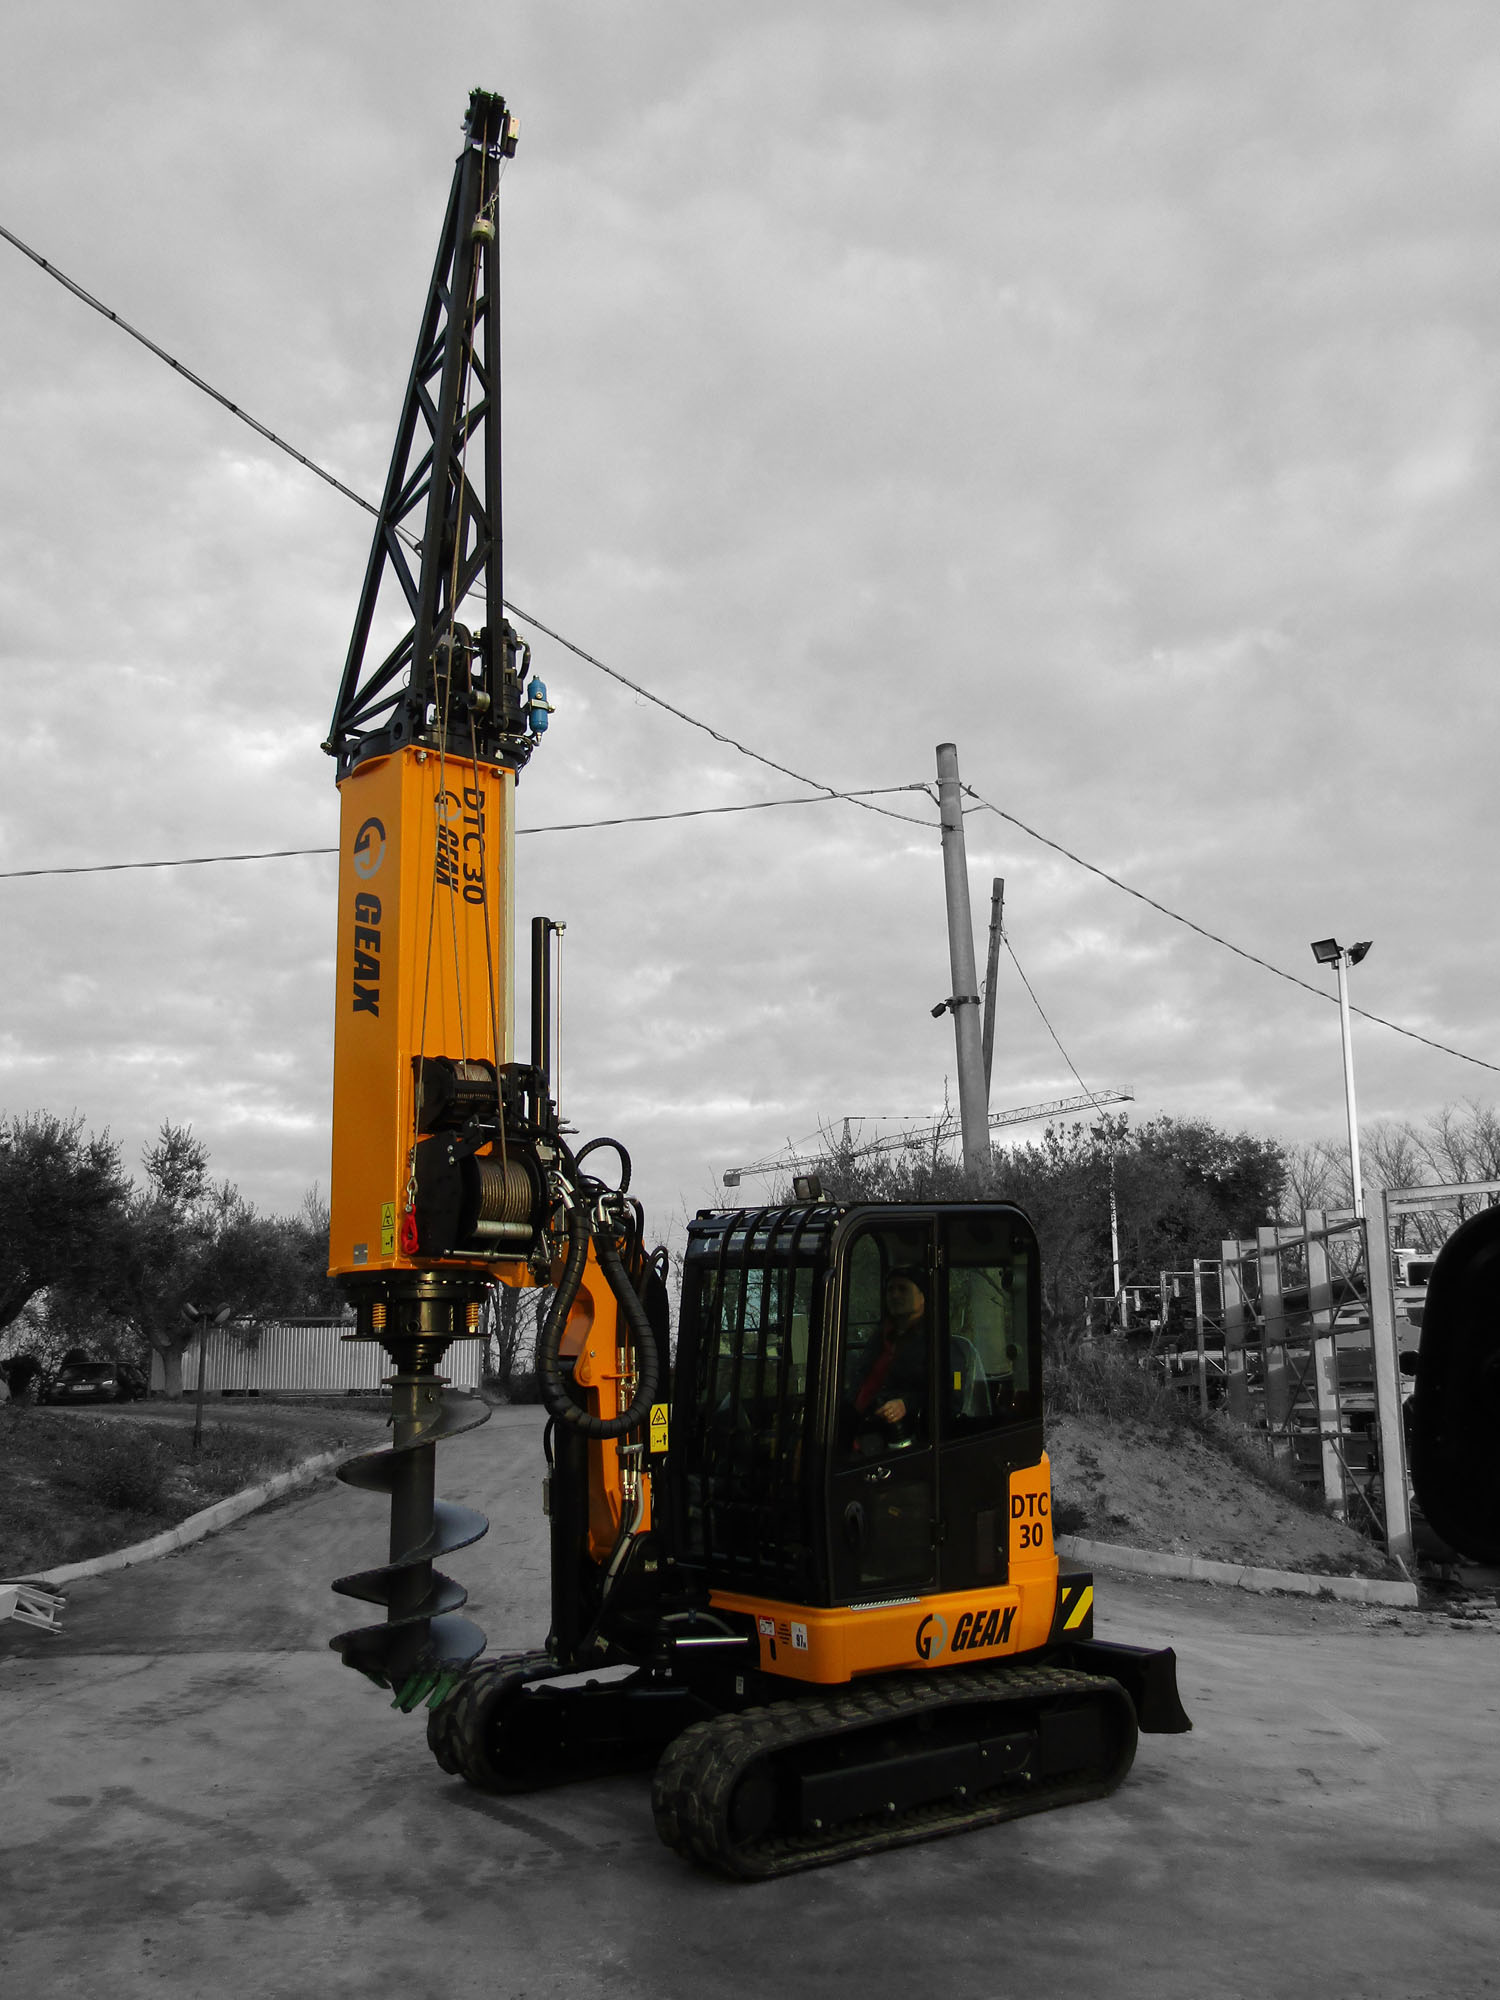 GEAX DTC30  Piling Rig   Piling Rig Mounted on JCB 67C-1 Excavator with Tier 4F Engine  GEAX ~ 2017 Hours: New